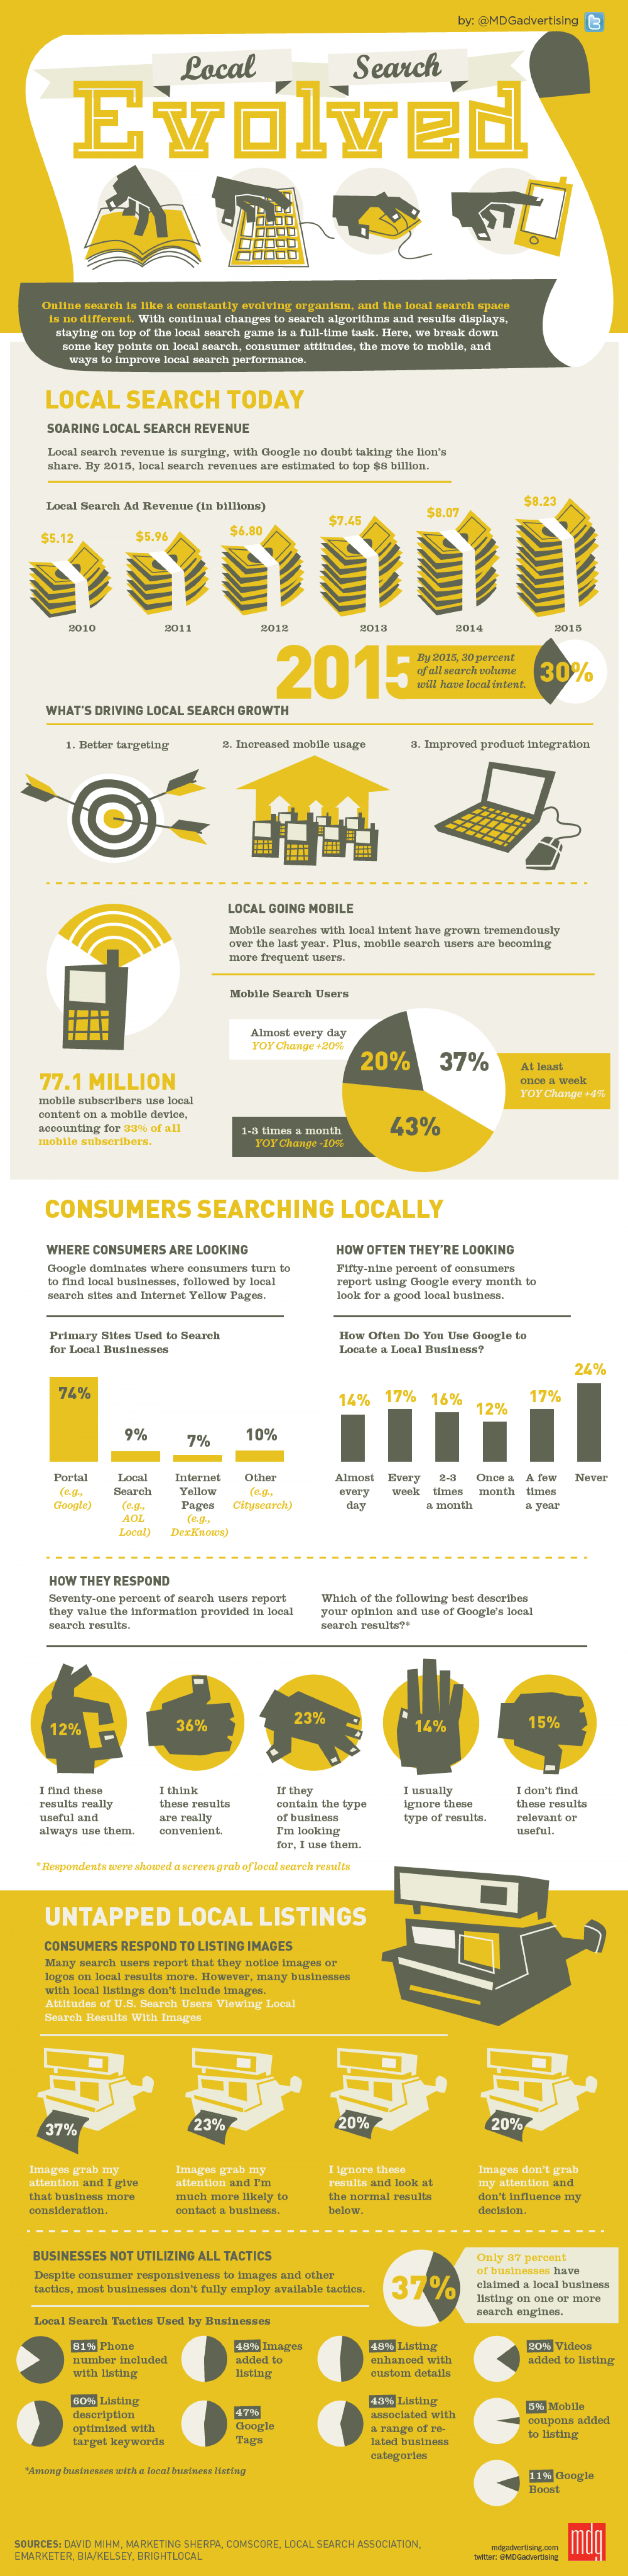 Infographic: Local Search Evolved Infographic